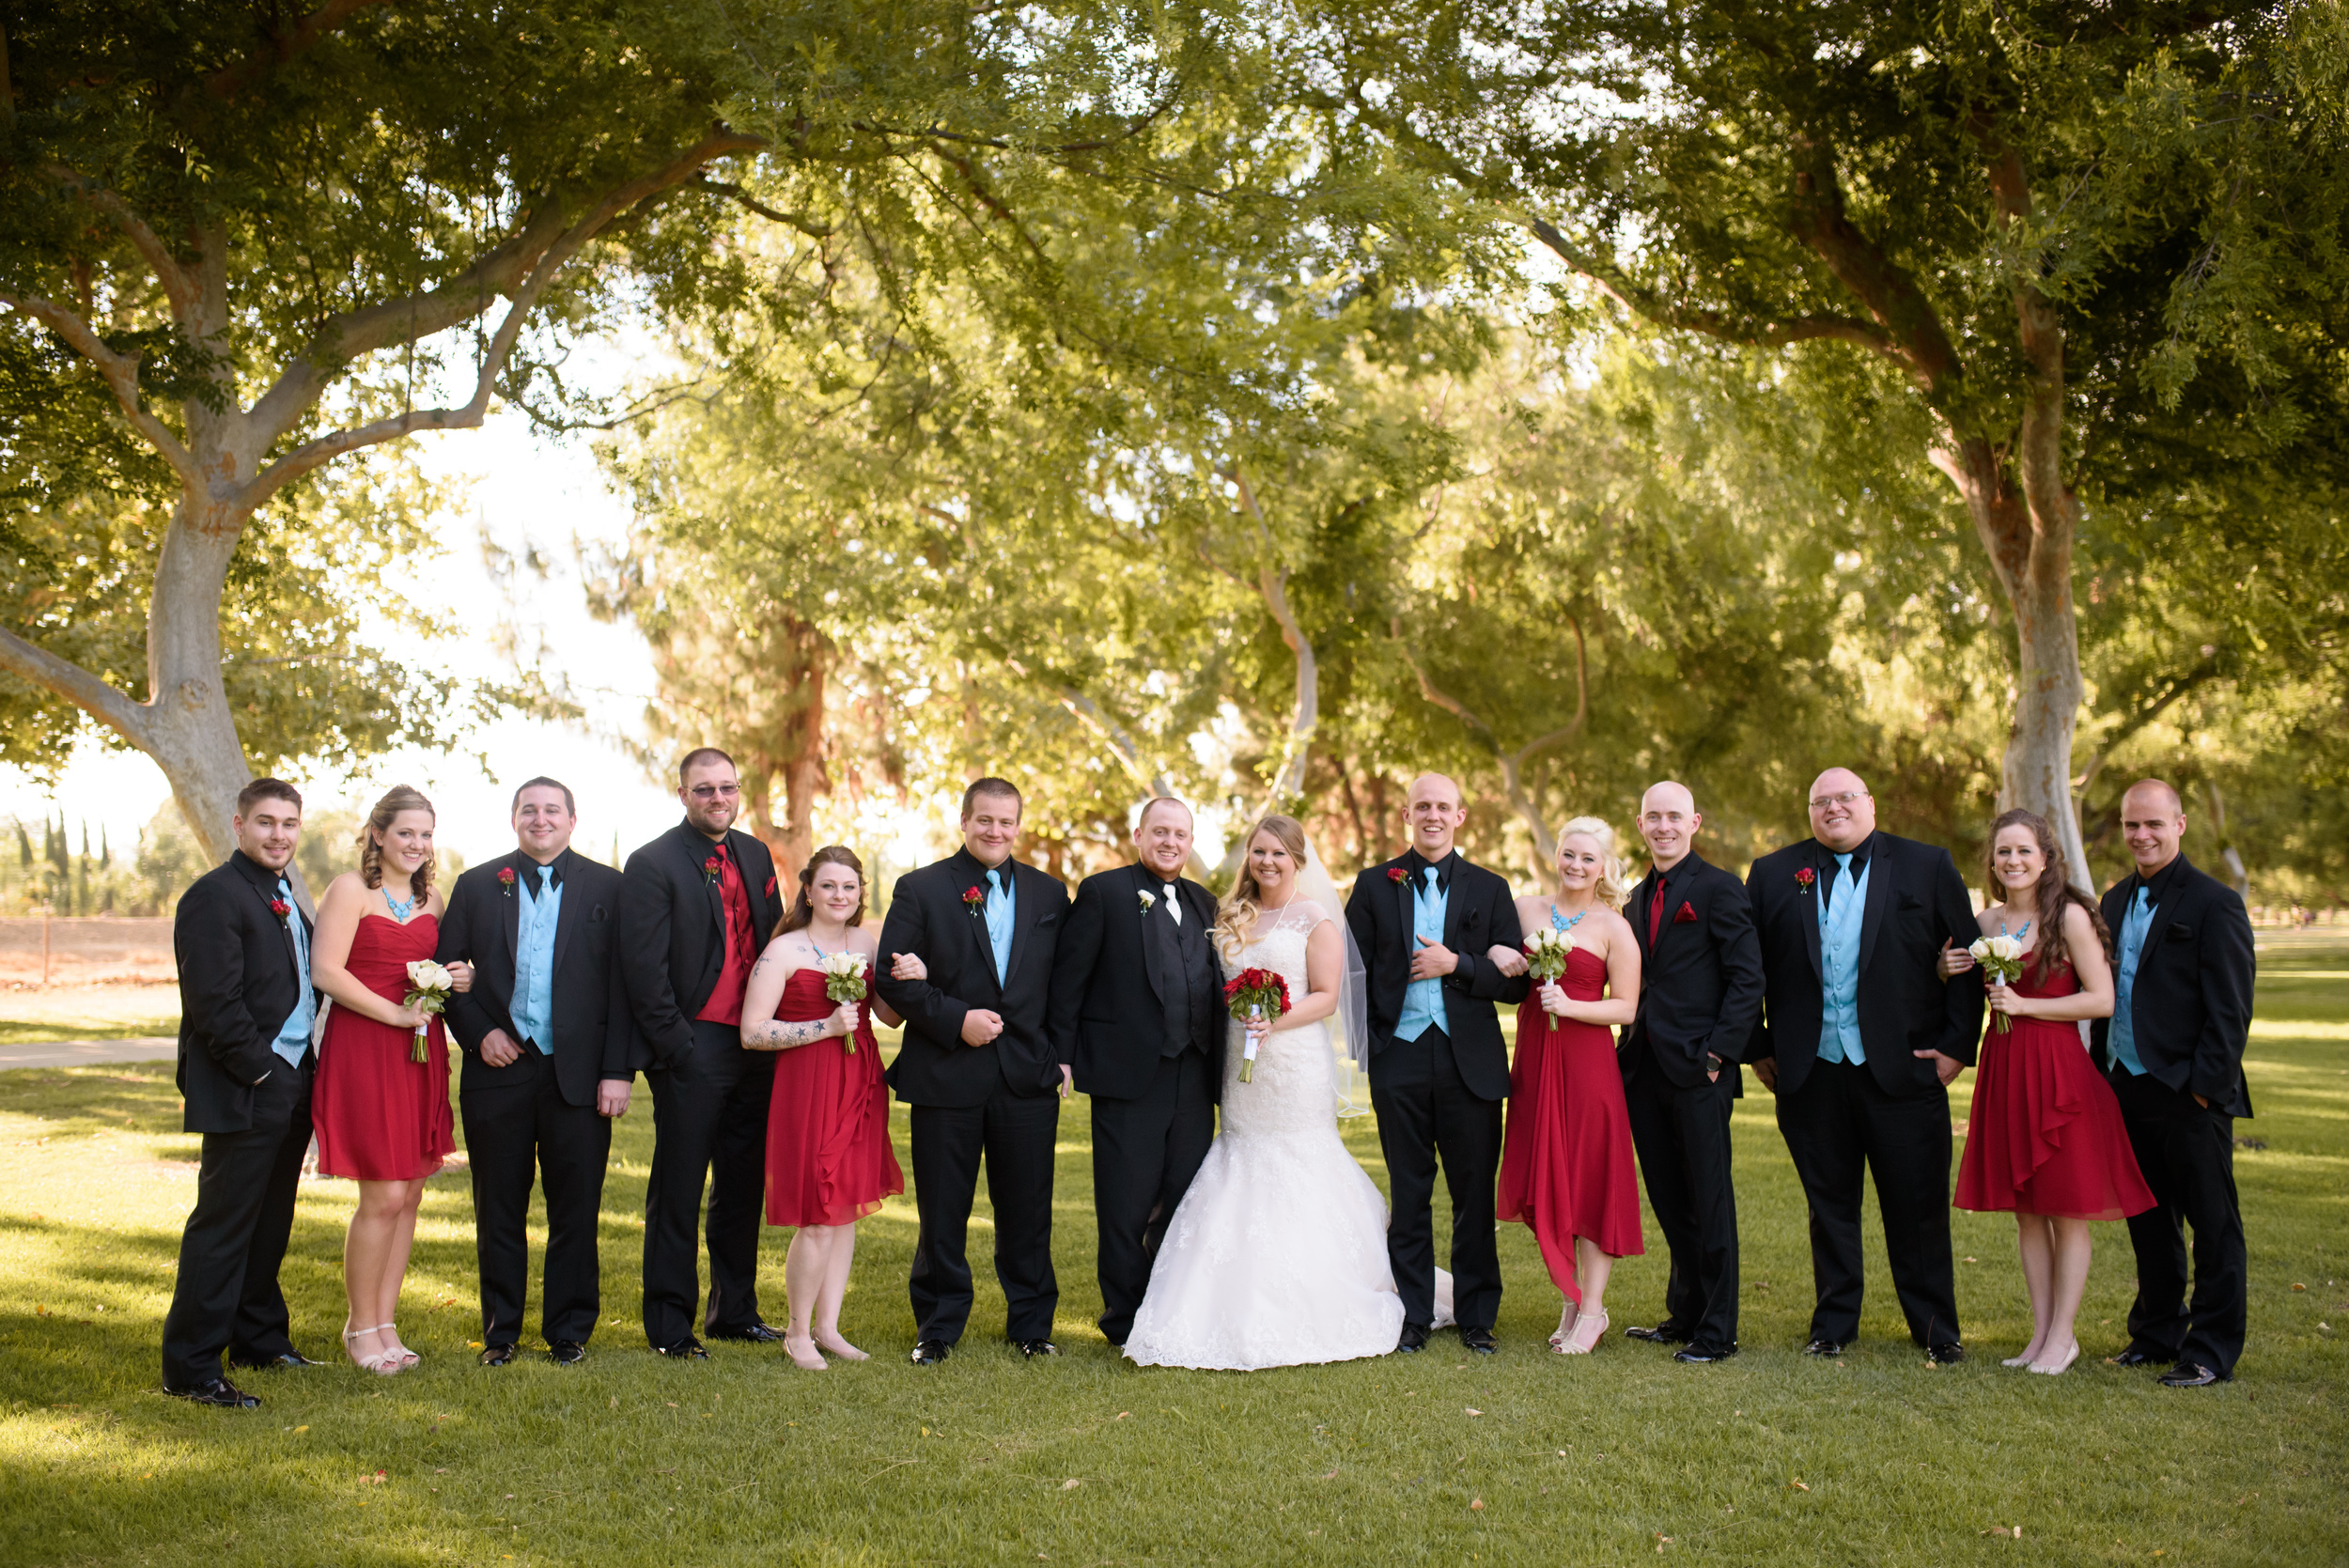 wedding party photos // long beach wedding photography